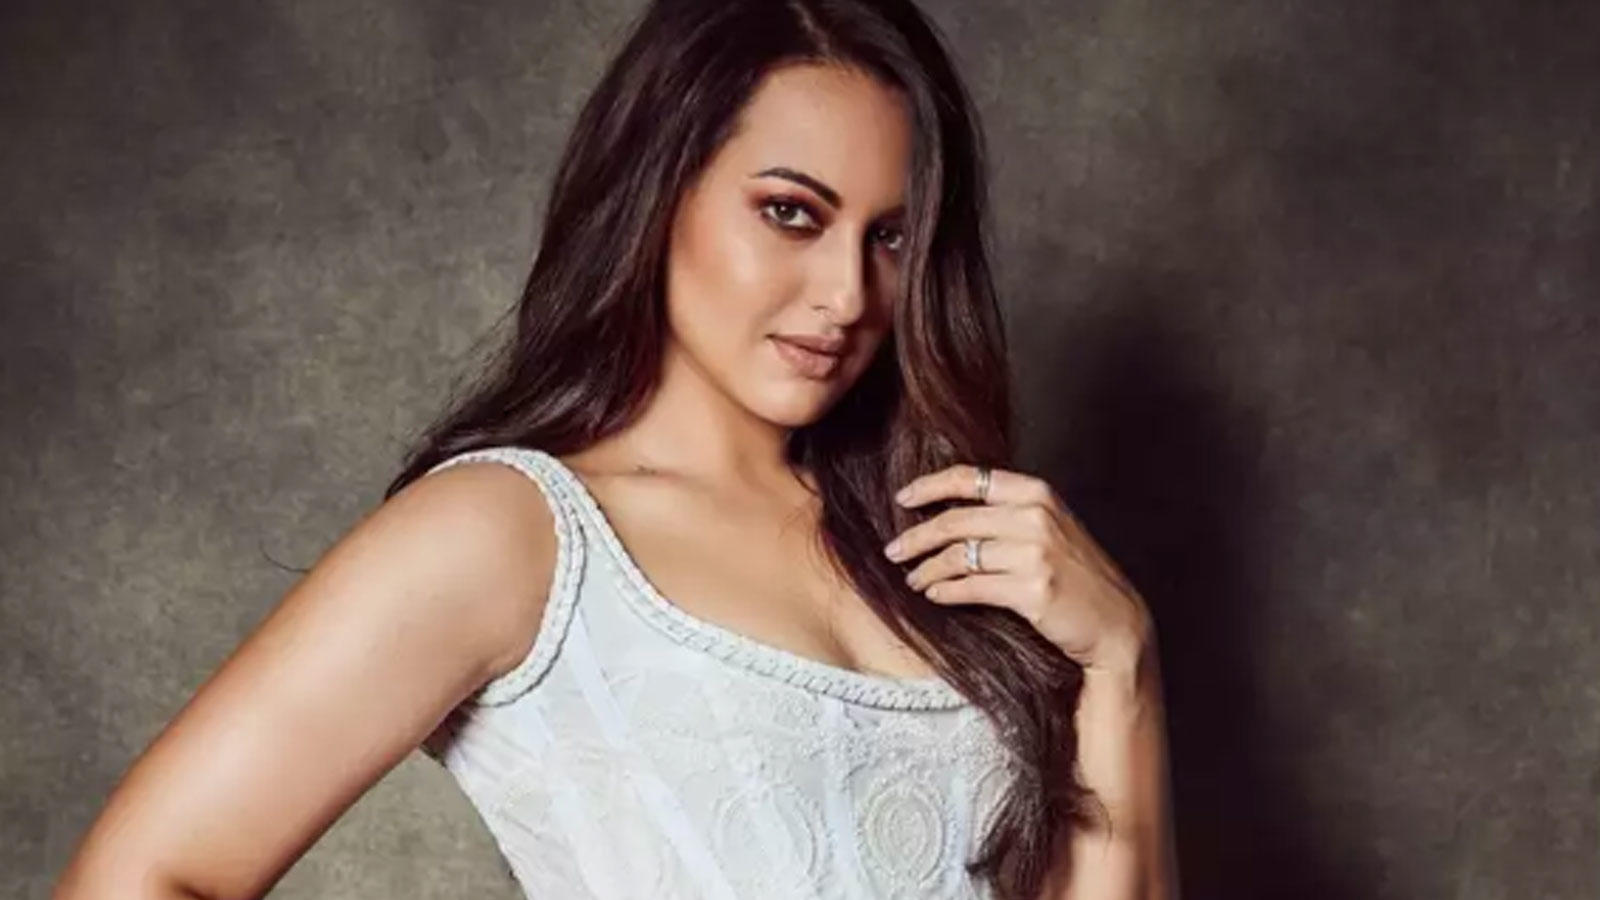 sonakshi-sinha-comes-out-in-support-of-a-poet-who-is-receiving-online-rape-threats